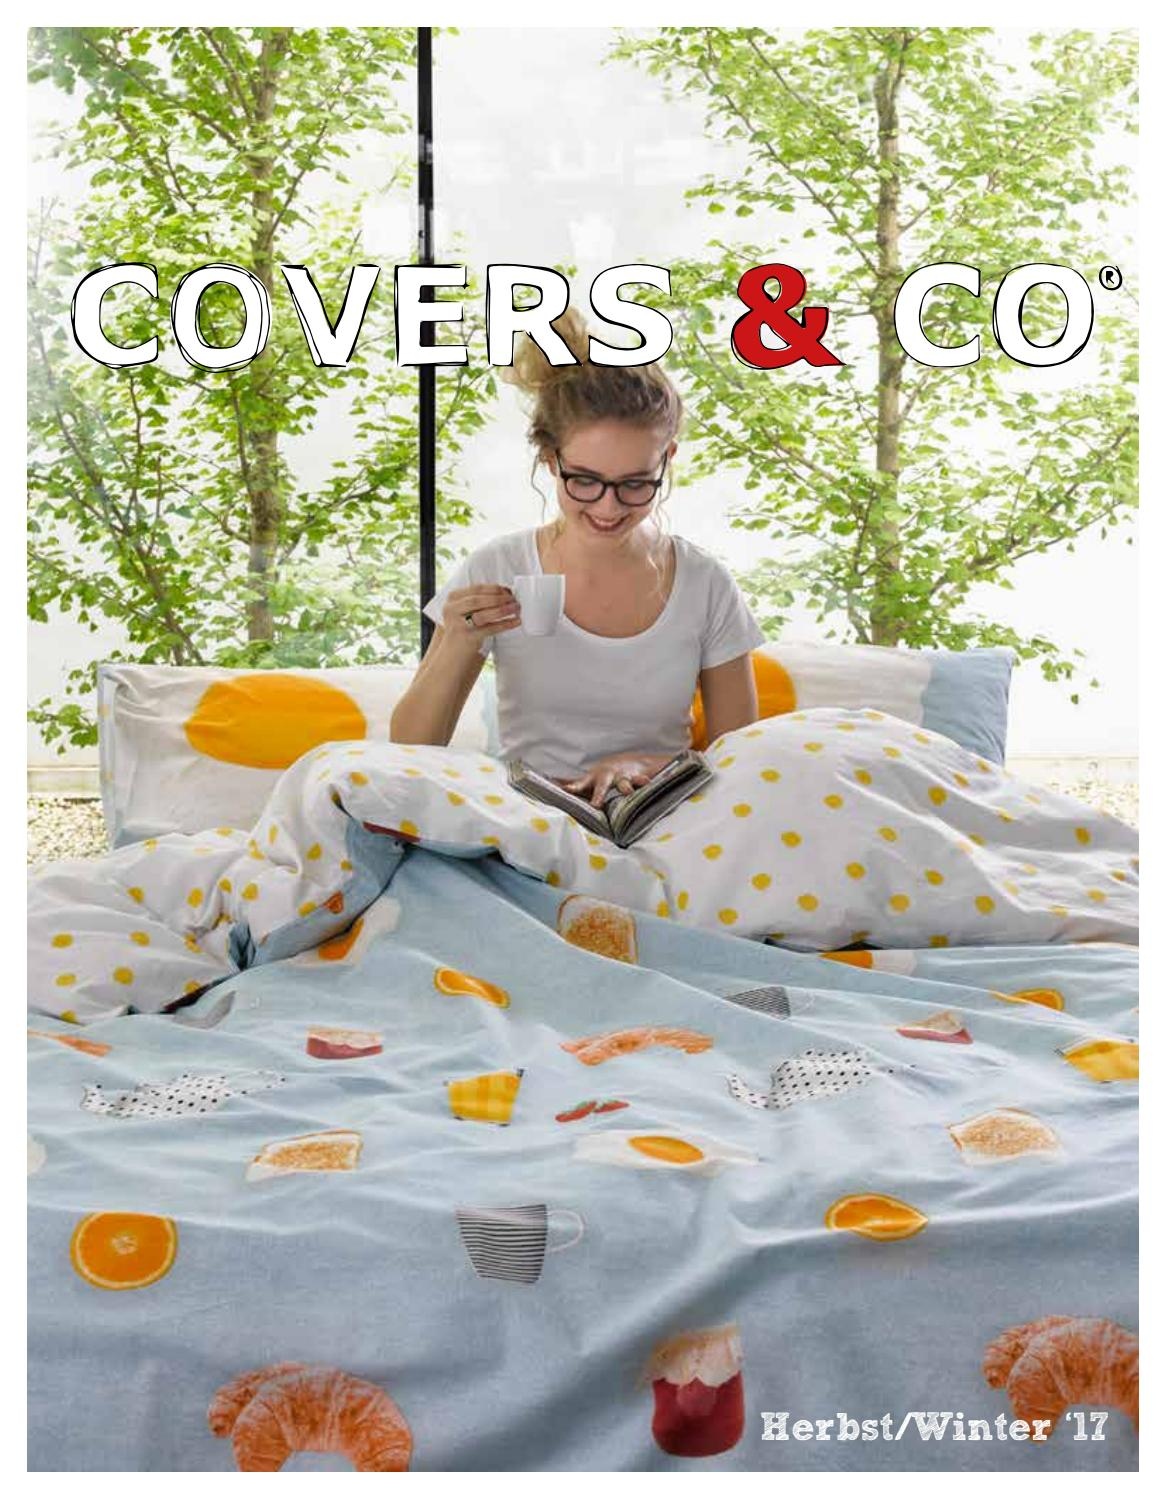 Bettwäsche Dog Side My Side Covers & Co Fall/winter 2017 Collection De By Essenza Home - Issuu